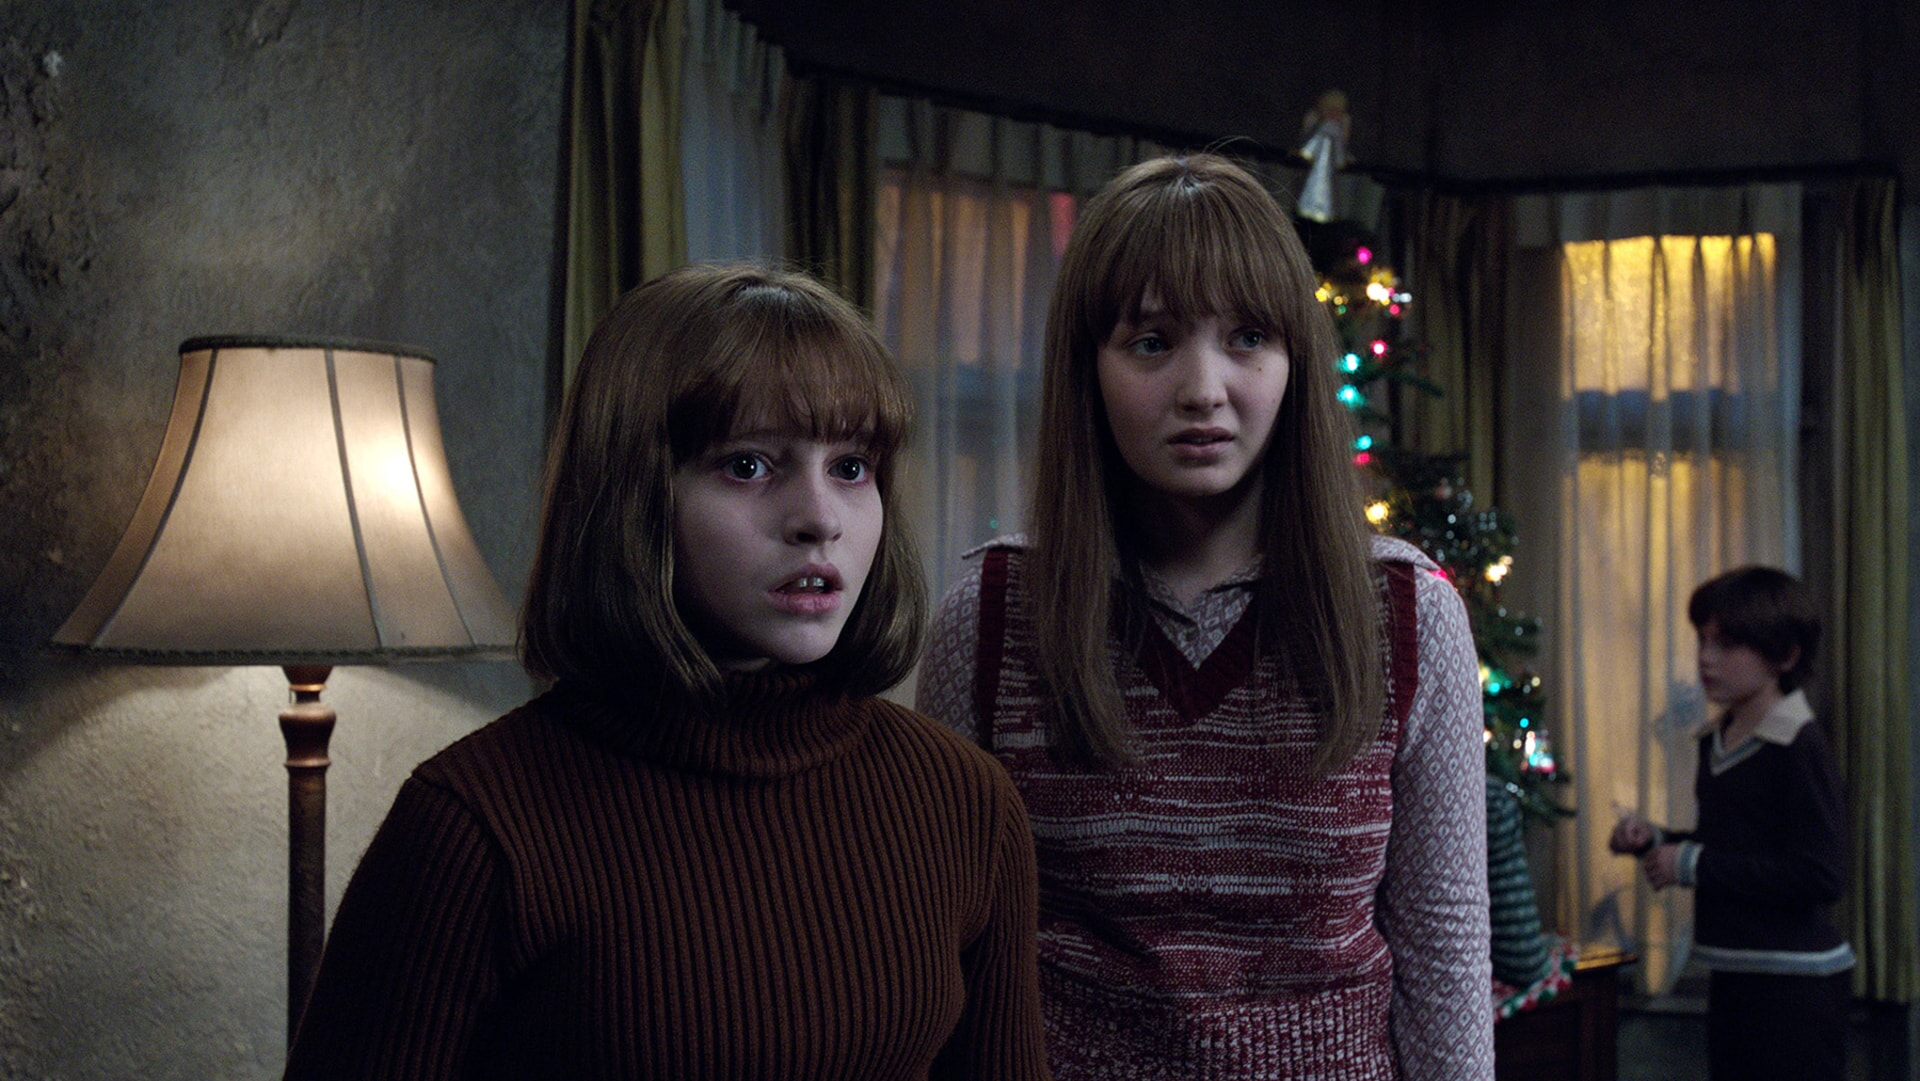 MADISON WOLFE as Janet Hodgson, LAUREN ESPOSITO as Margaret Hodgson and PATRICK McAULEY as Johnny Hodgson in a home with a Christmas tree